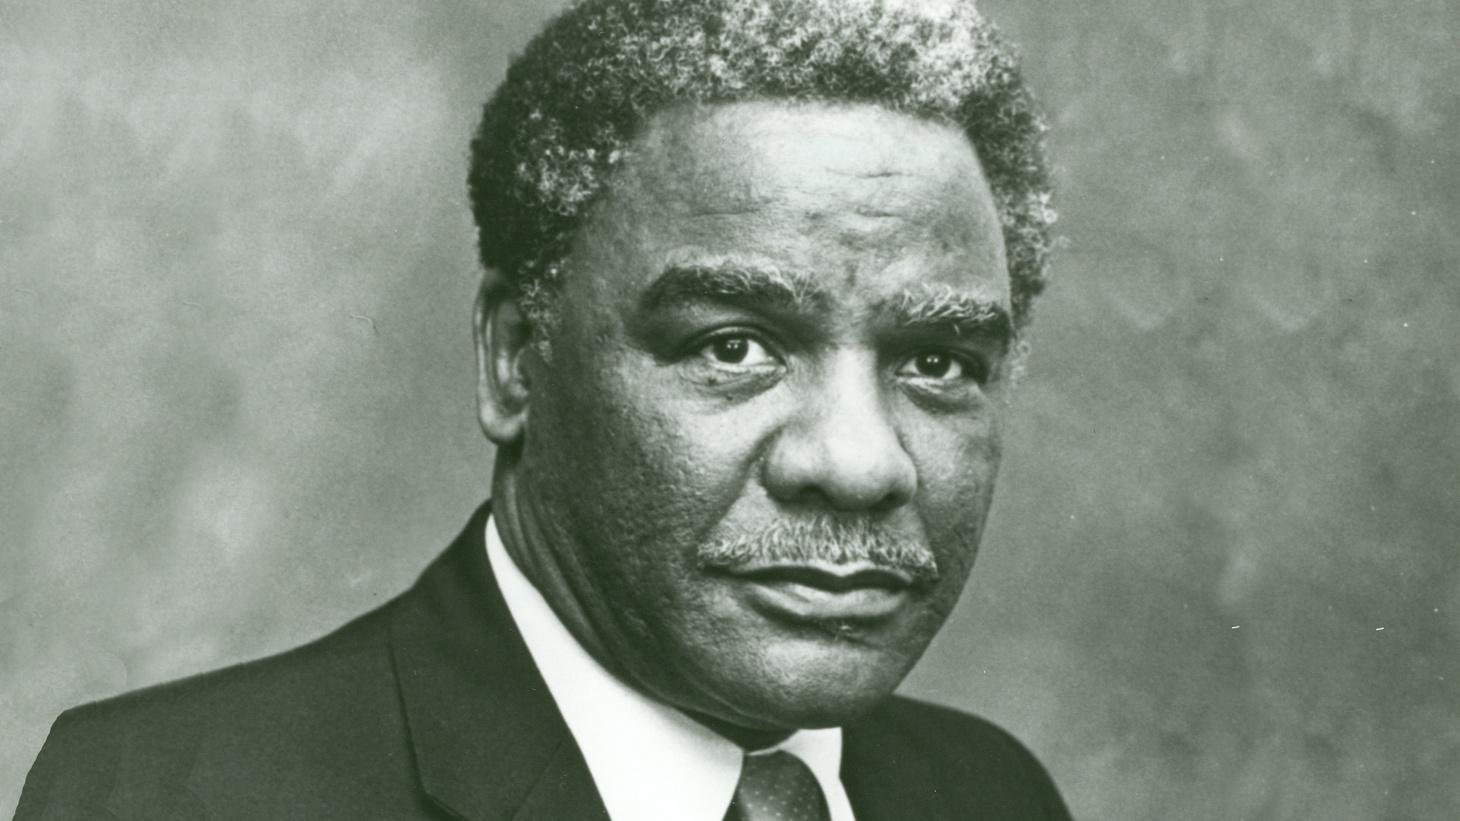 The story of Harold Washington, the greatest politician you've probably never heard of, and the political race war he set off when he became Chicago's first black mayor.